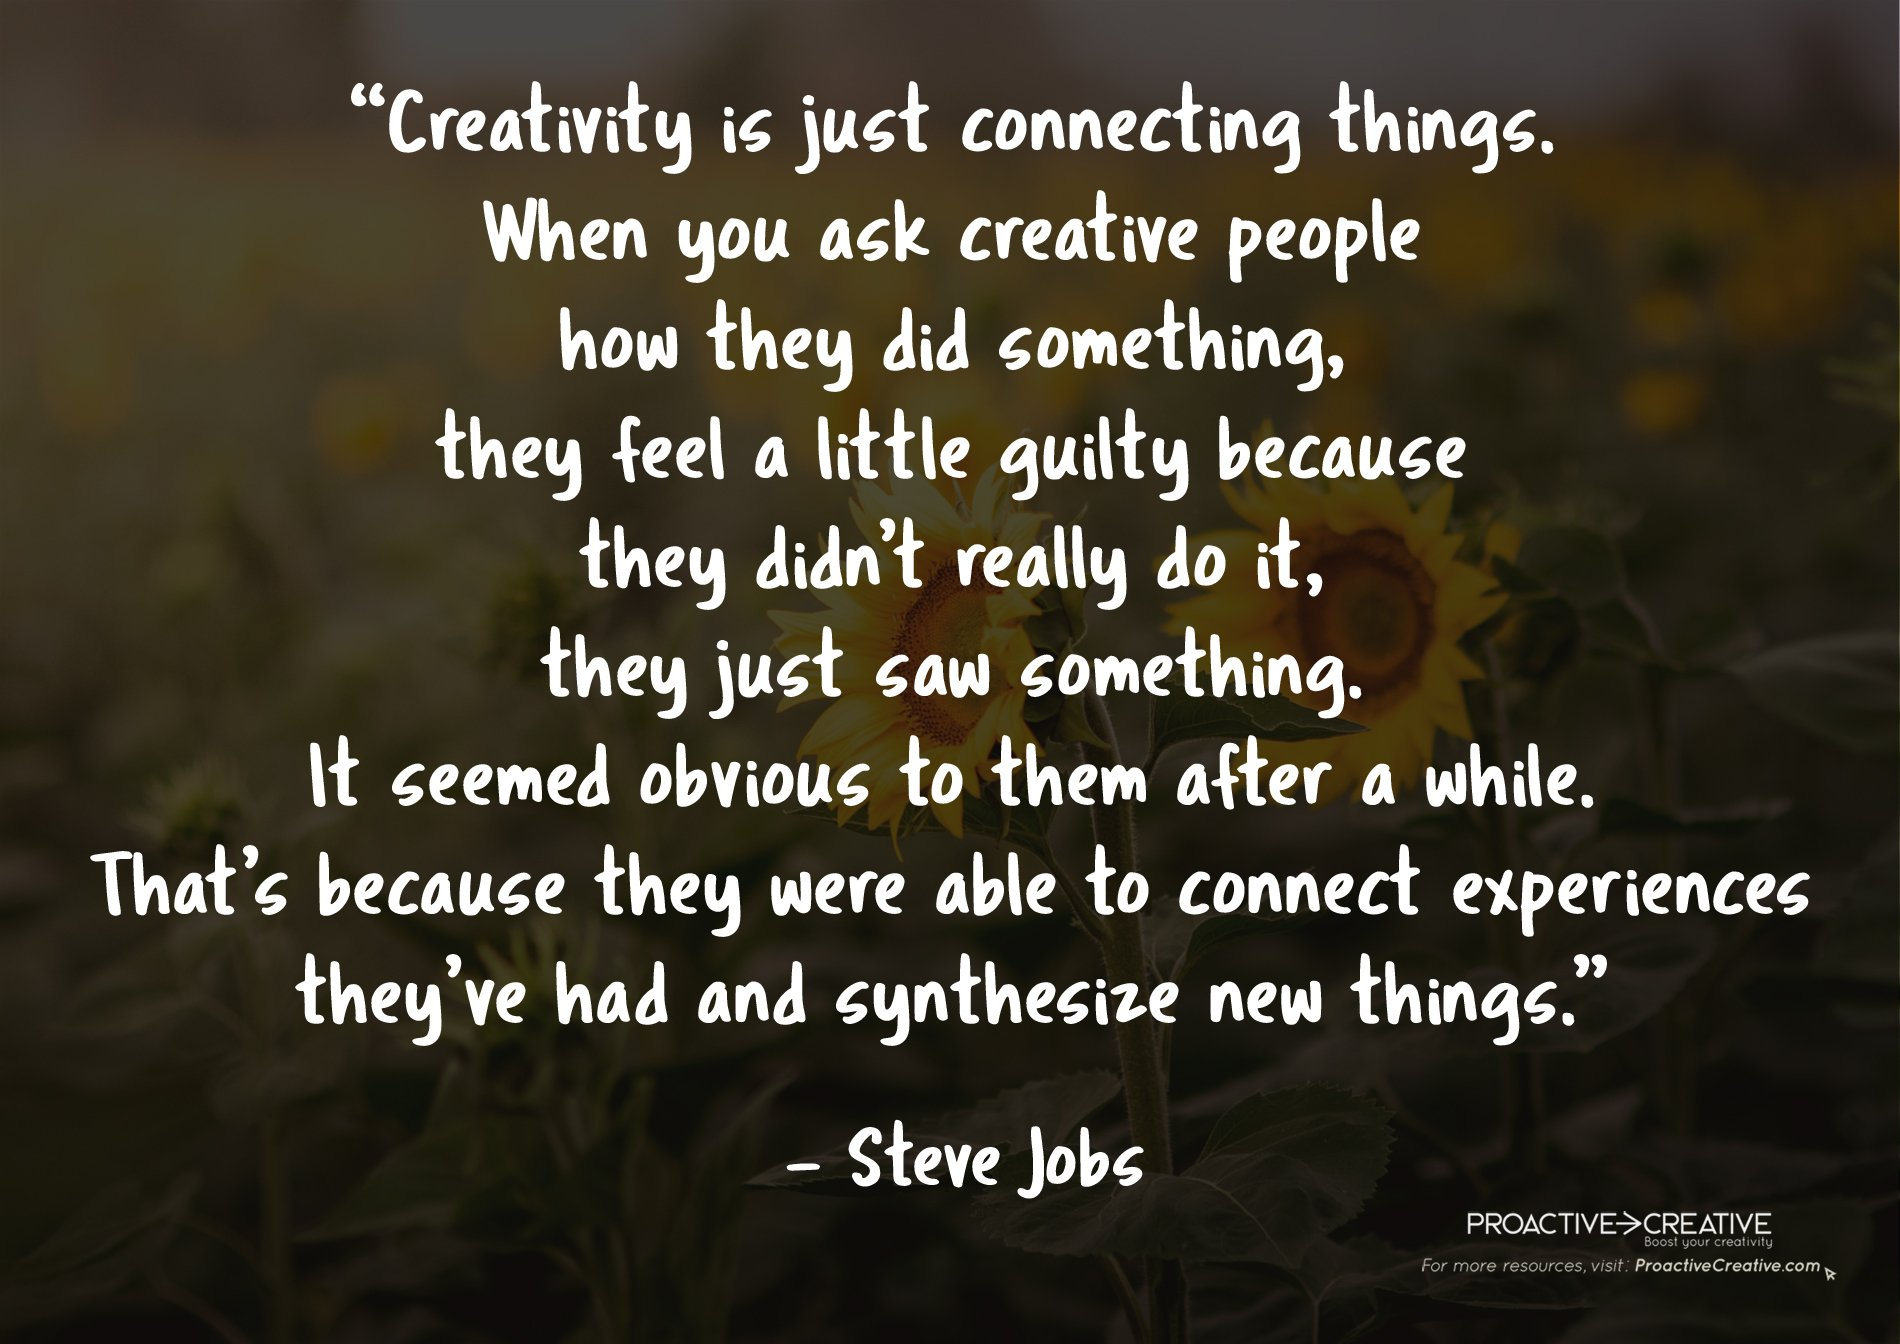 Best creativity quotes - Steve Jobs